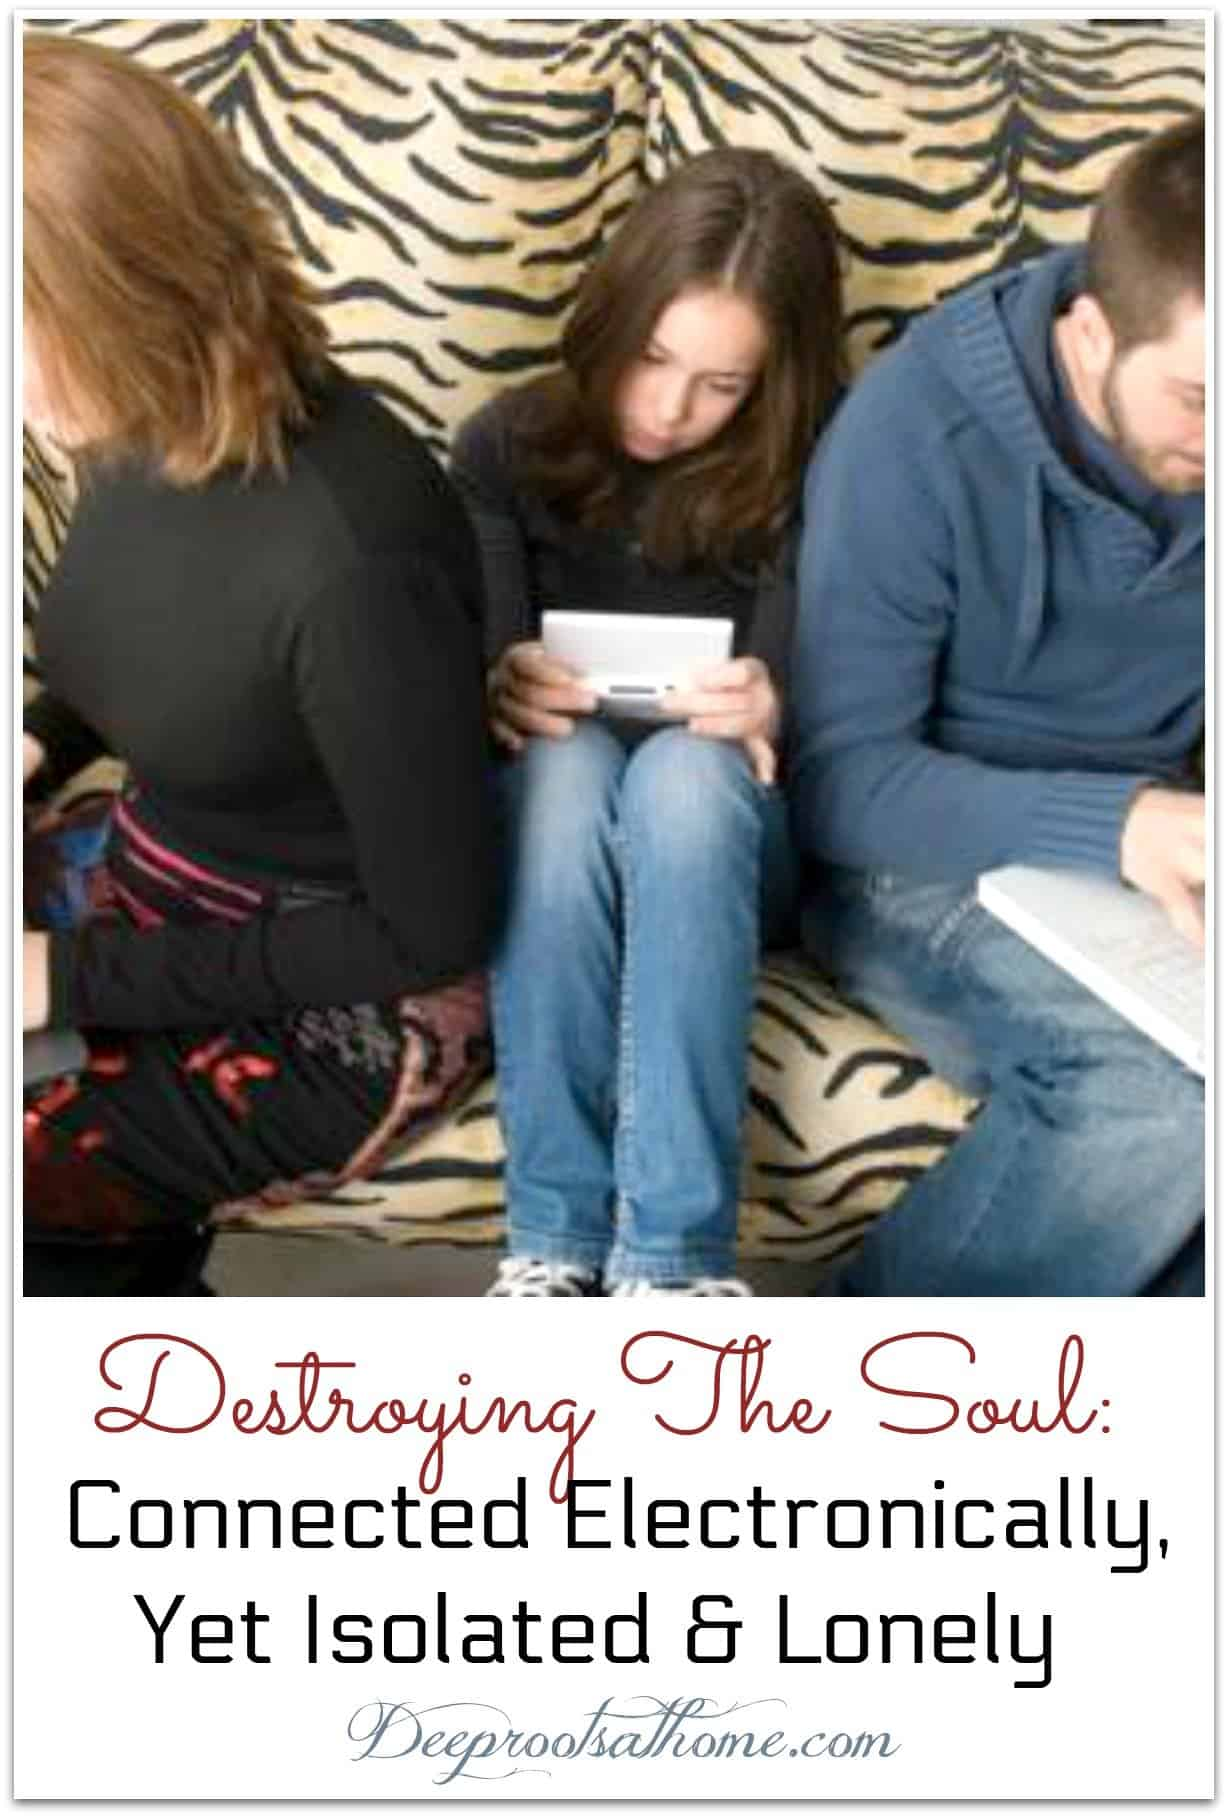 Destroying The Soul: Connected Electronically, Yet Isolated & Lonely. people looking down on devices